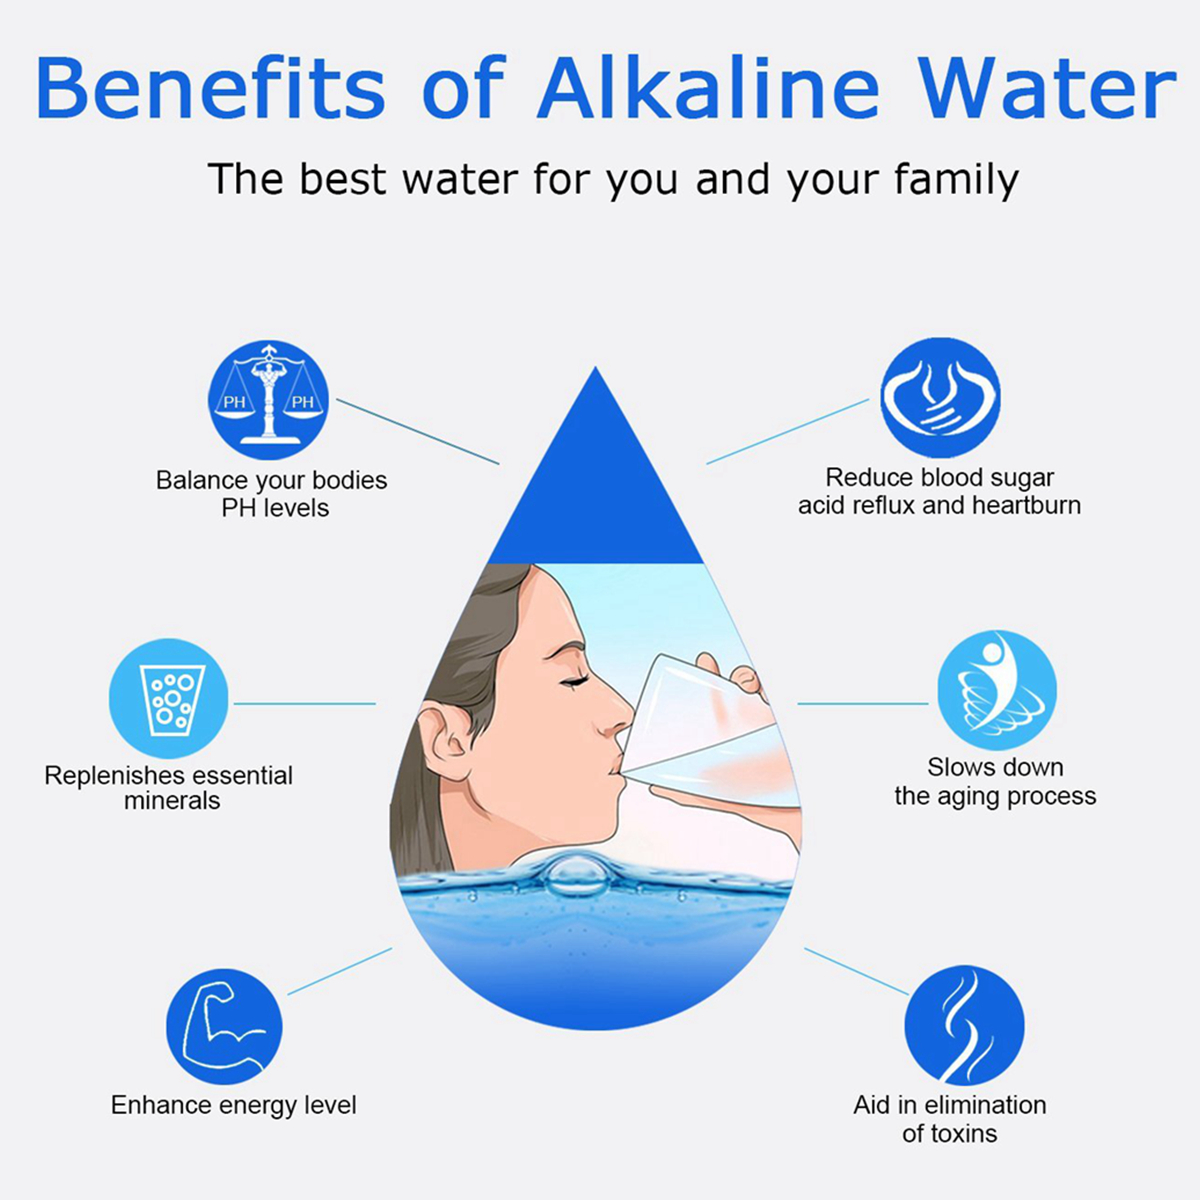 Benefits of alkaline water picture